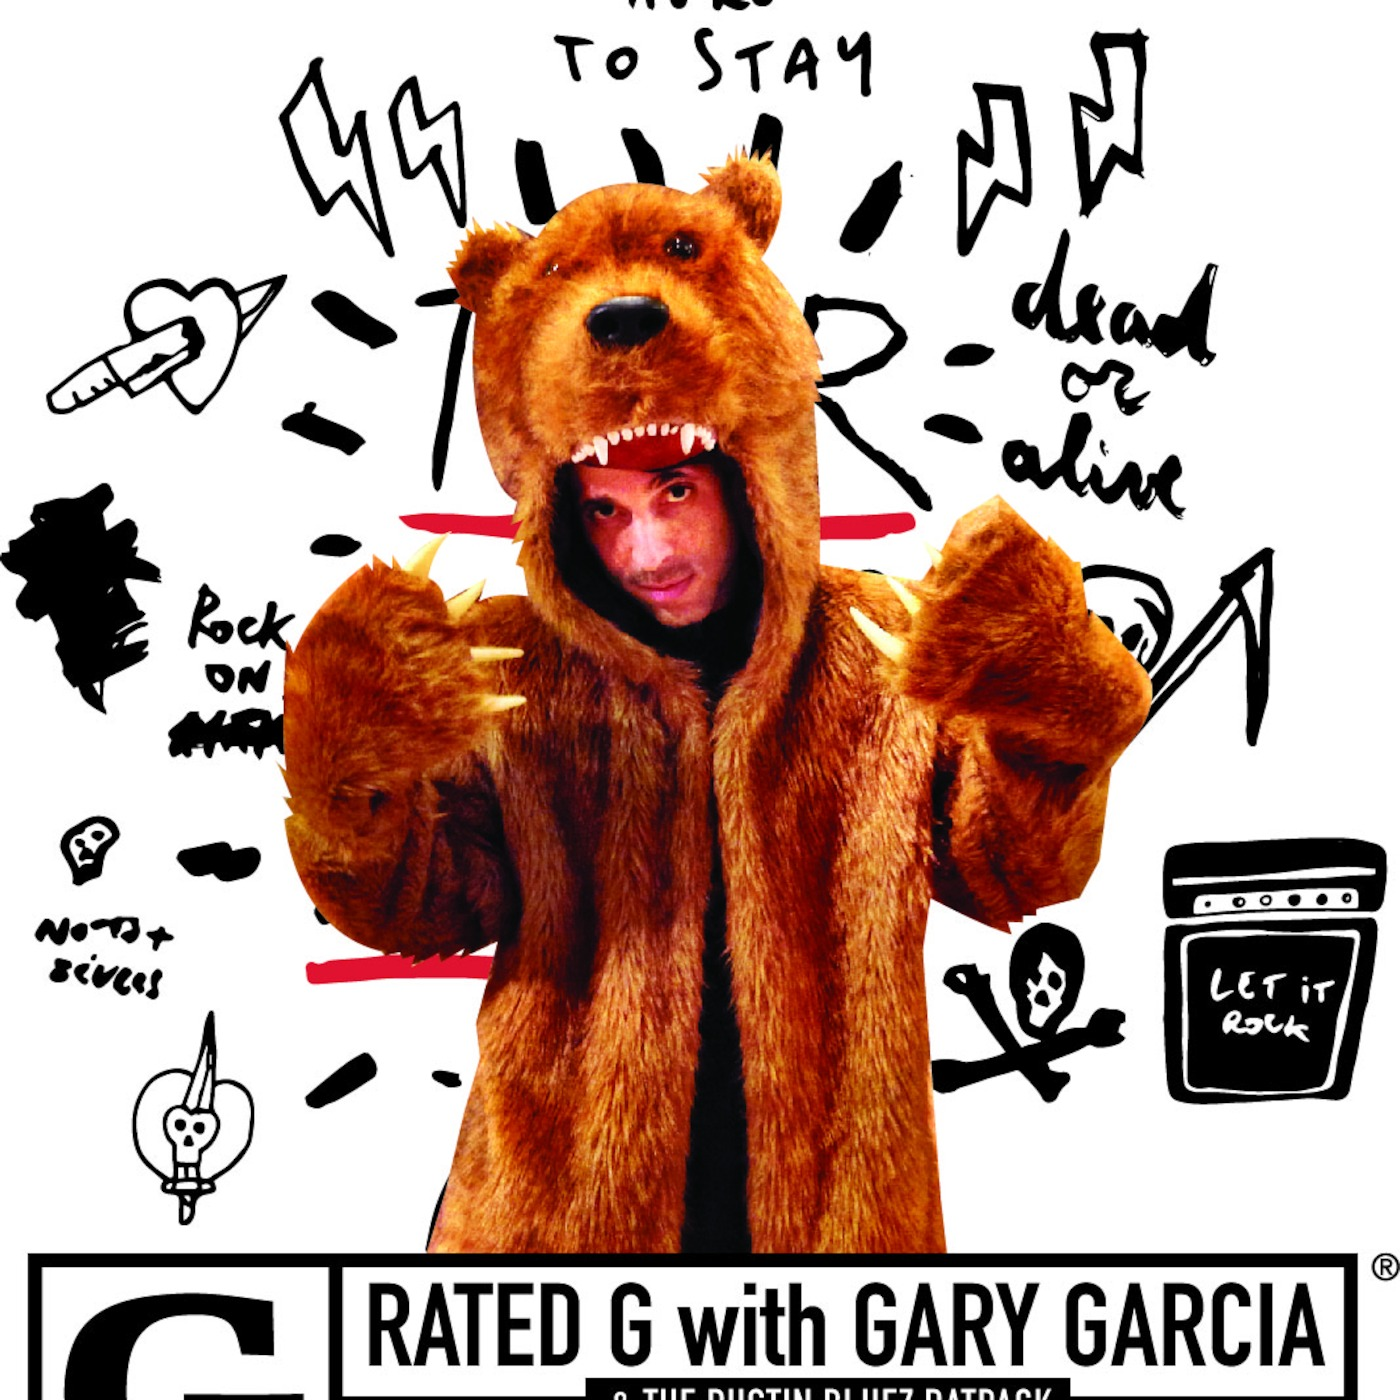 Rated G with Gary Garcia and the Rustin Bluez Rat Pack